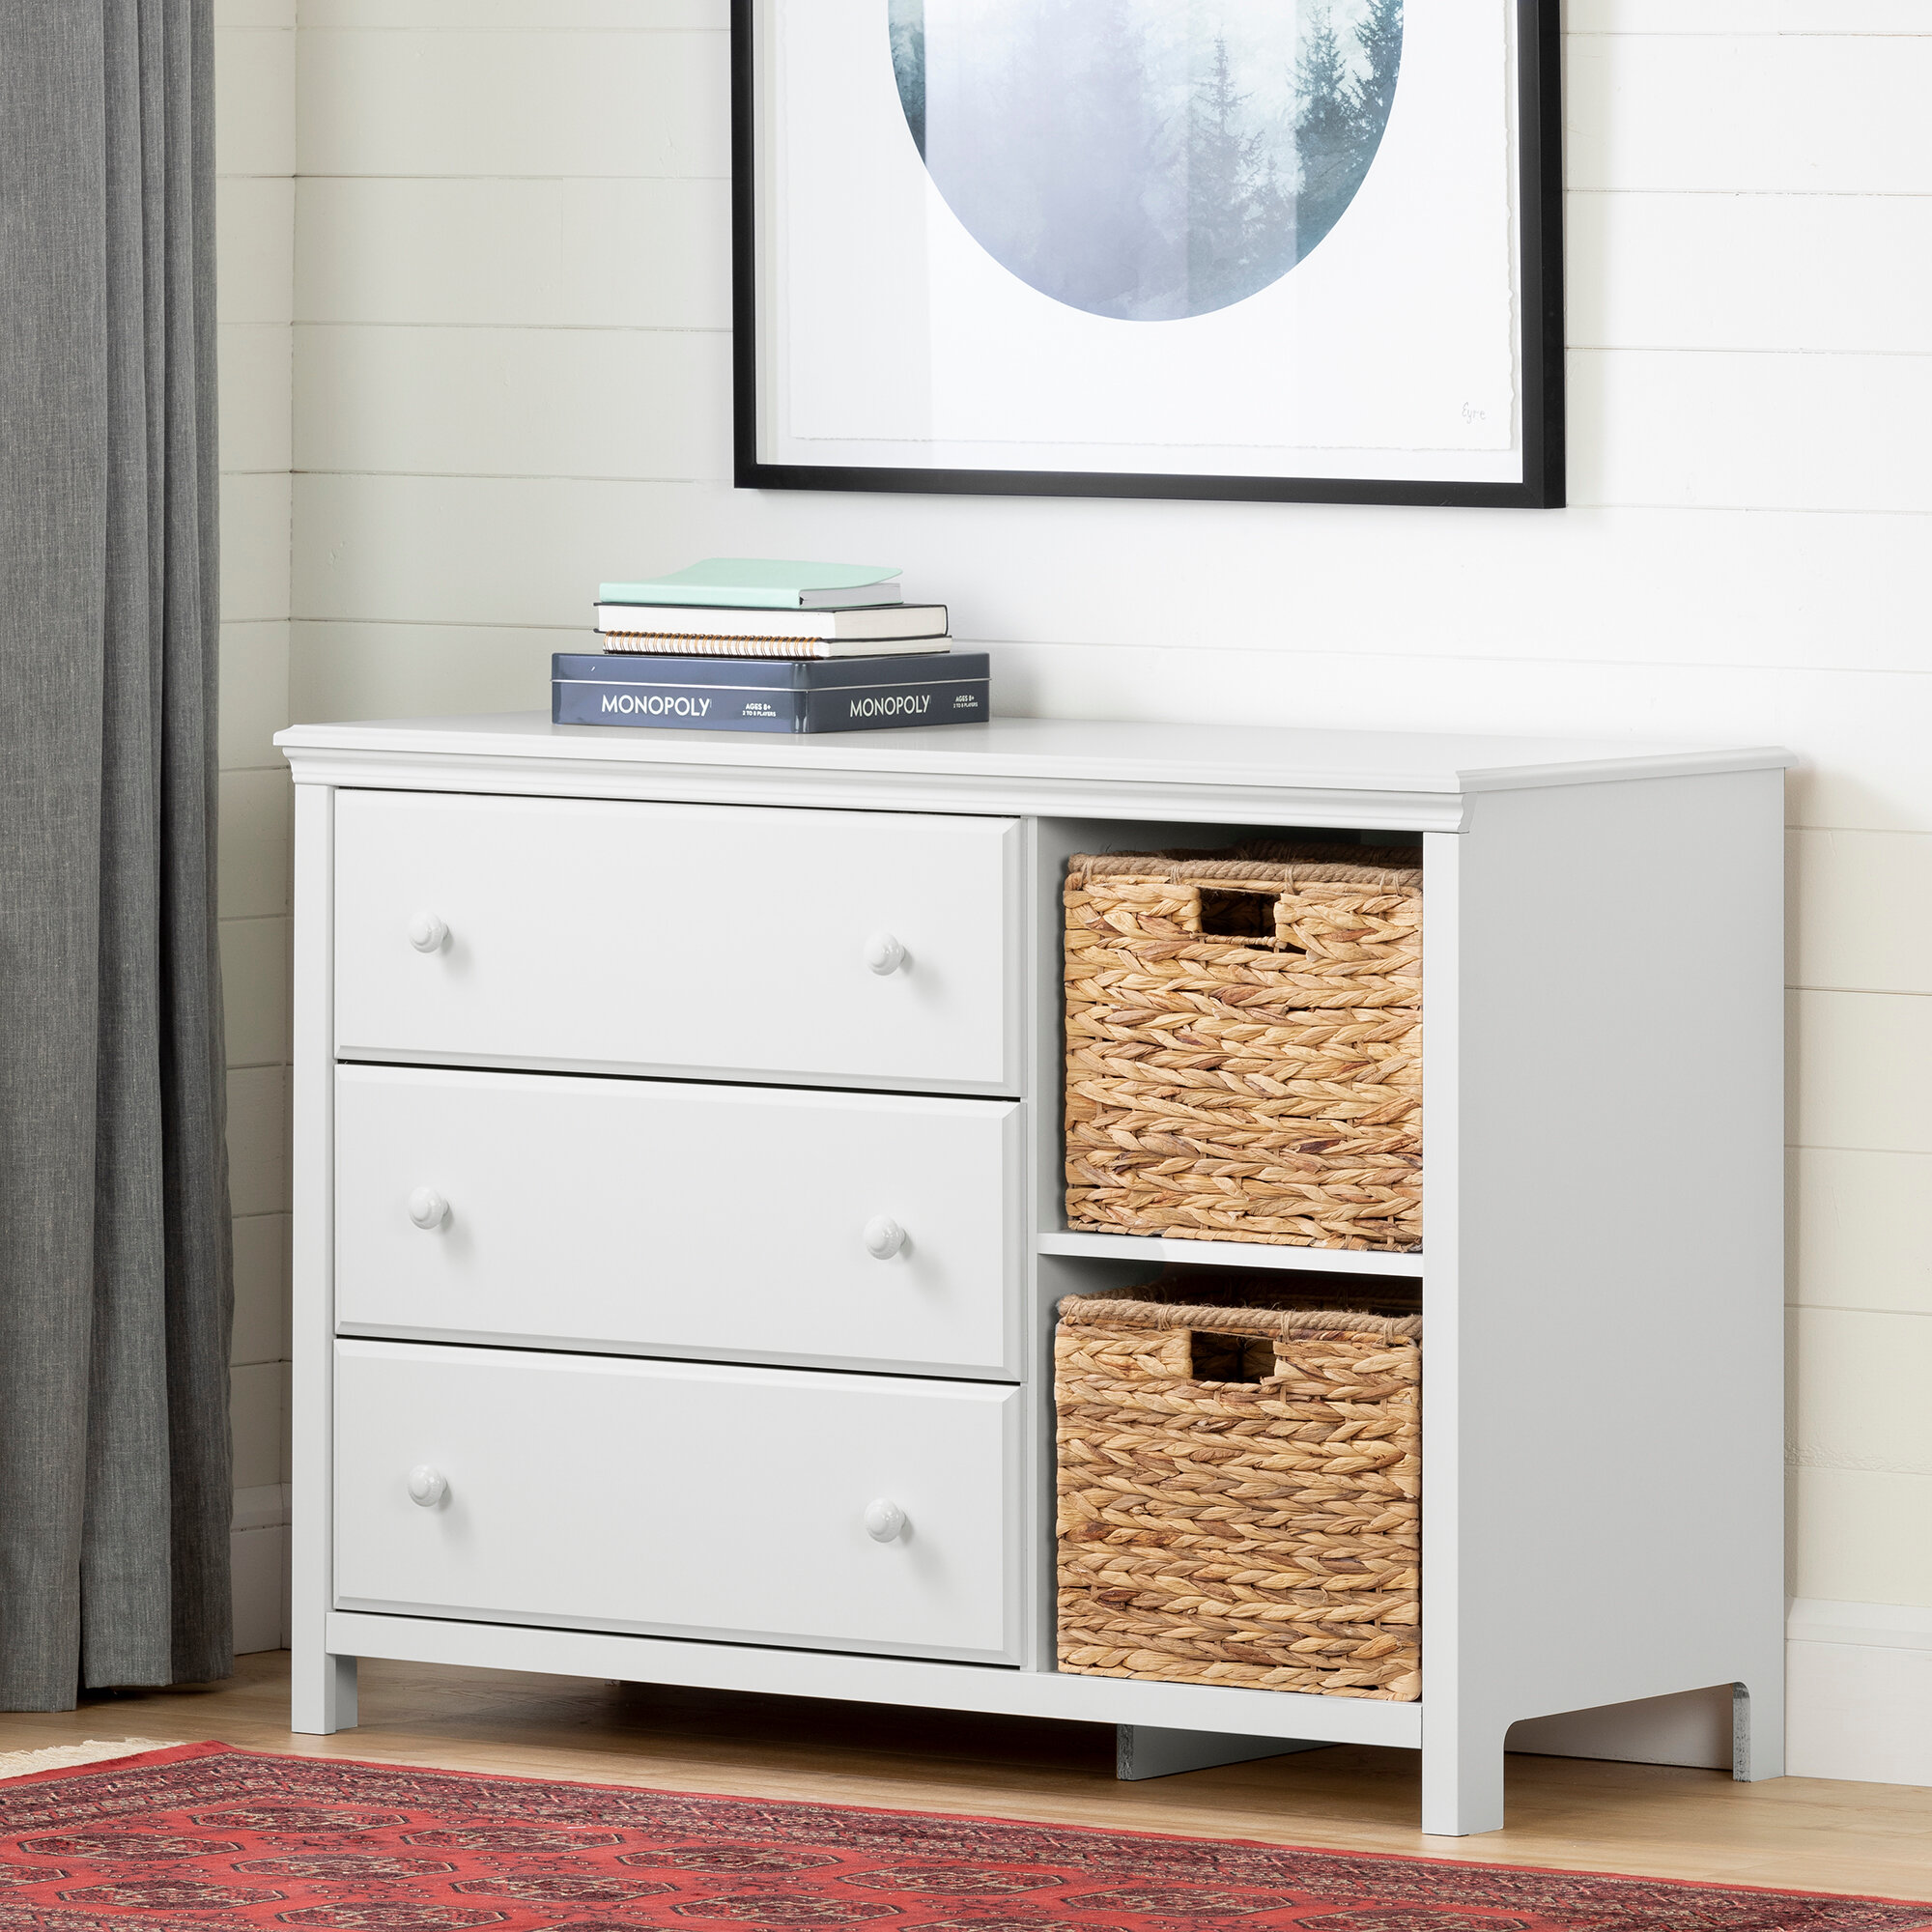 Cotton Candy 3 Drawer Dresser